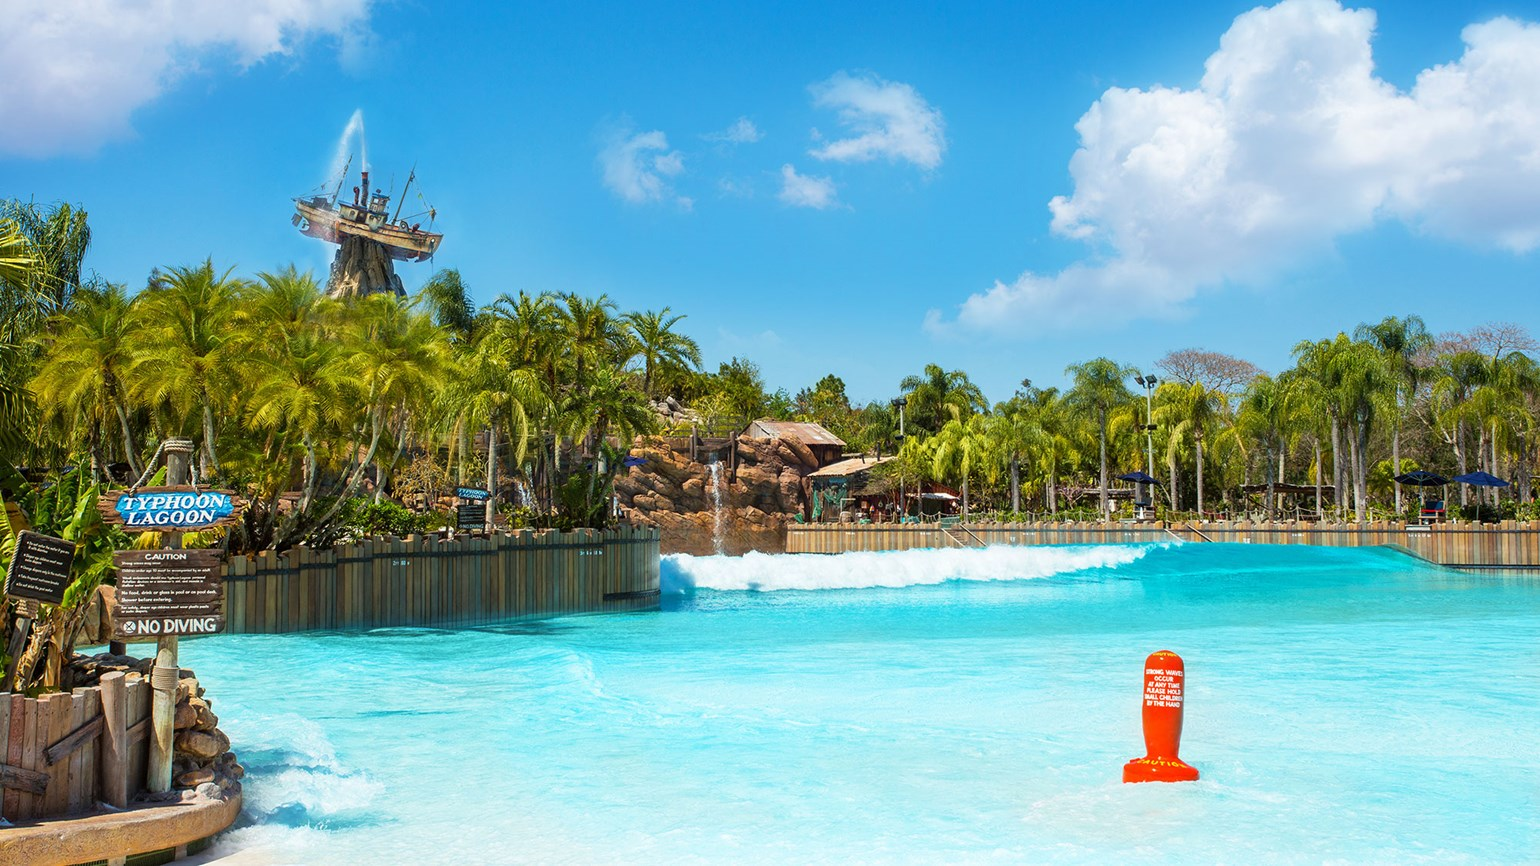 Disney introduces park ticket add-on for water parks and sports activities